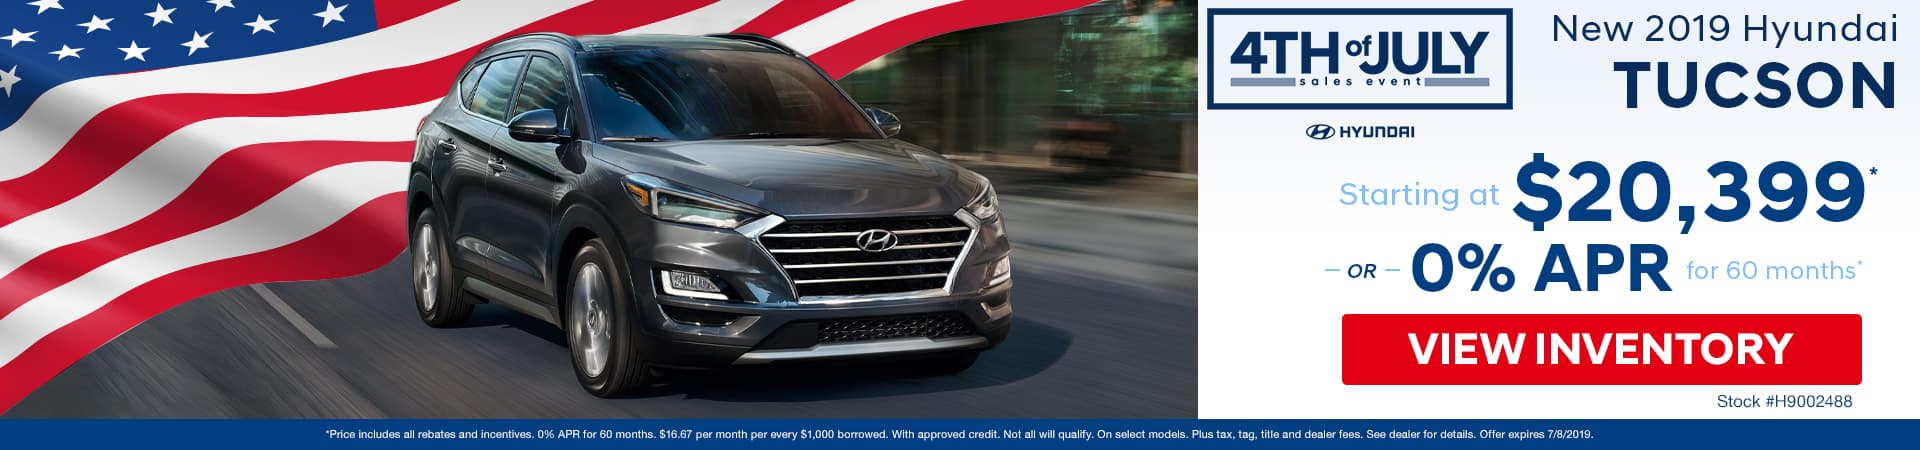 Get a new 2019 Hyundai Tucson for just $20,399 or 0% APR in Murfreesboro TN